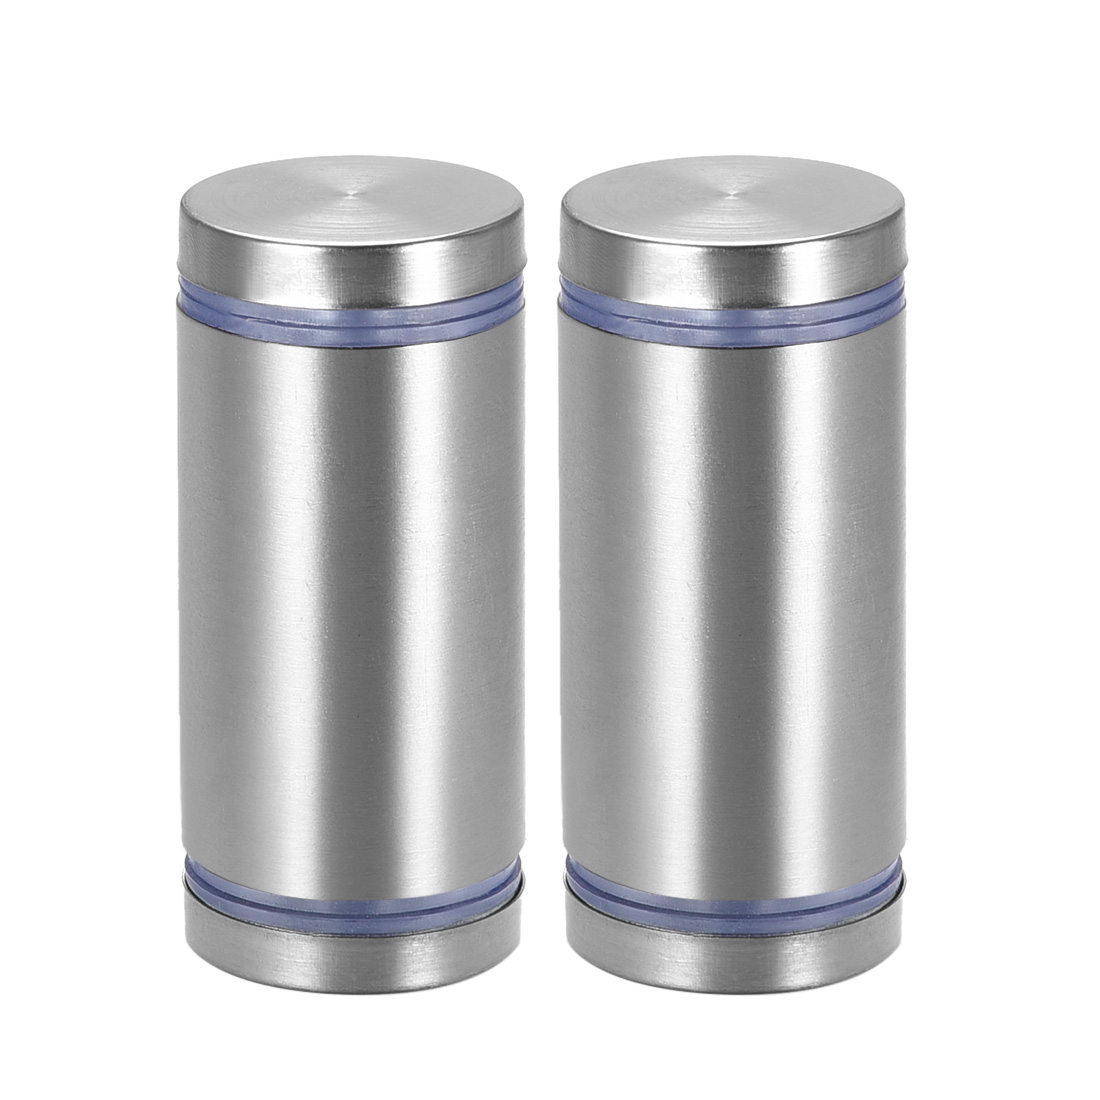 Glass Standoff Double Head Stainless Steel Standoff Holder 25mm x 55mm 2 Pcs